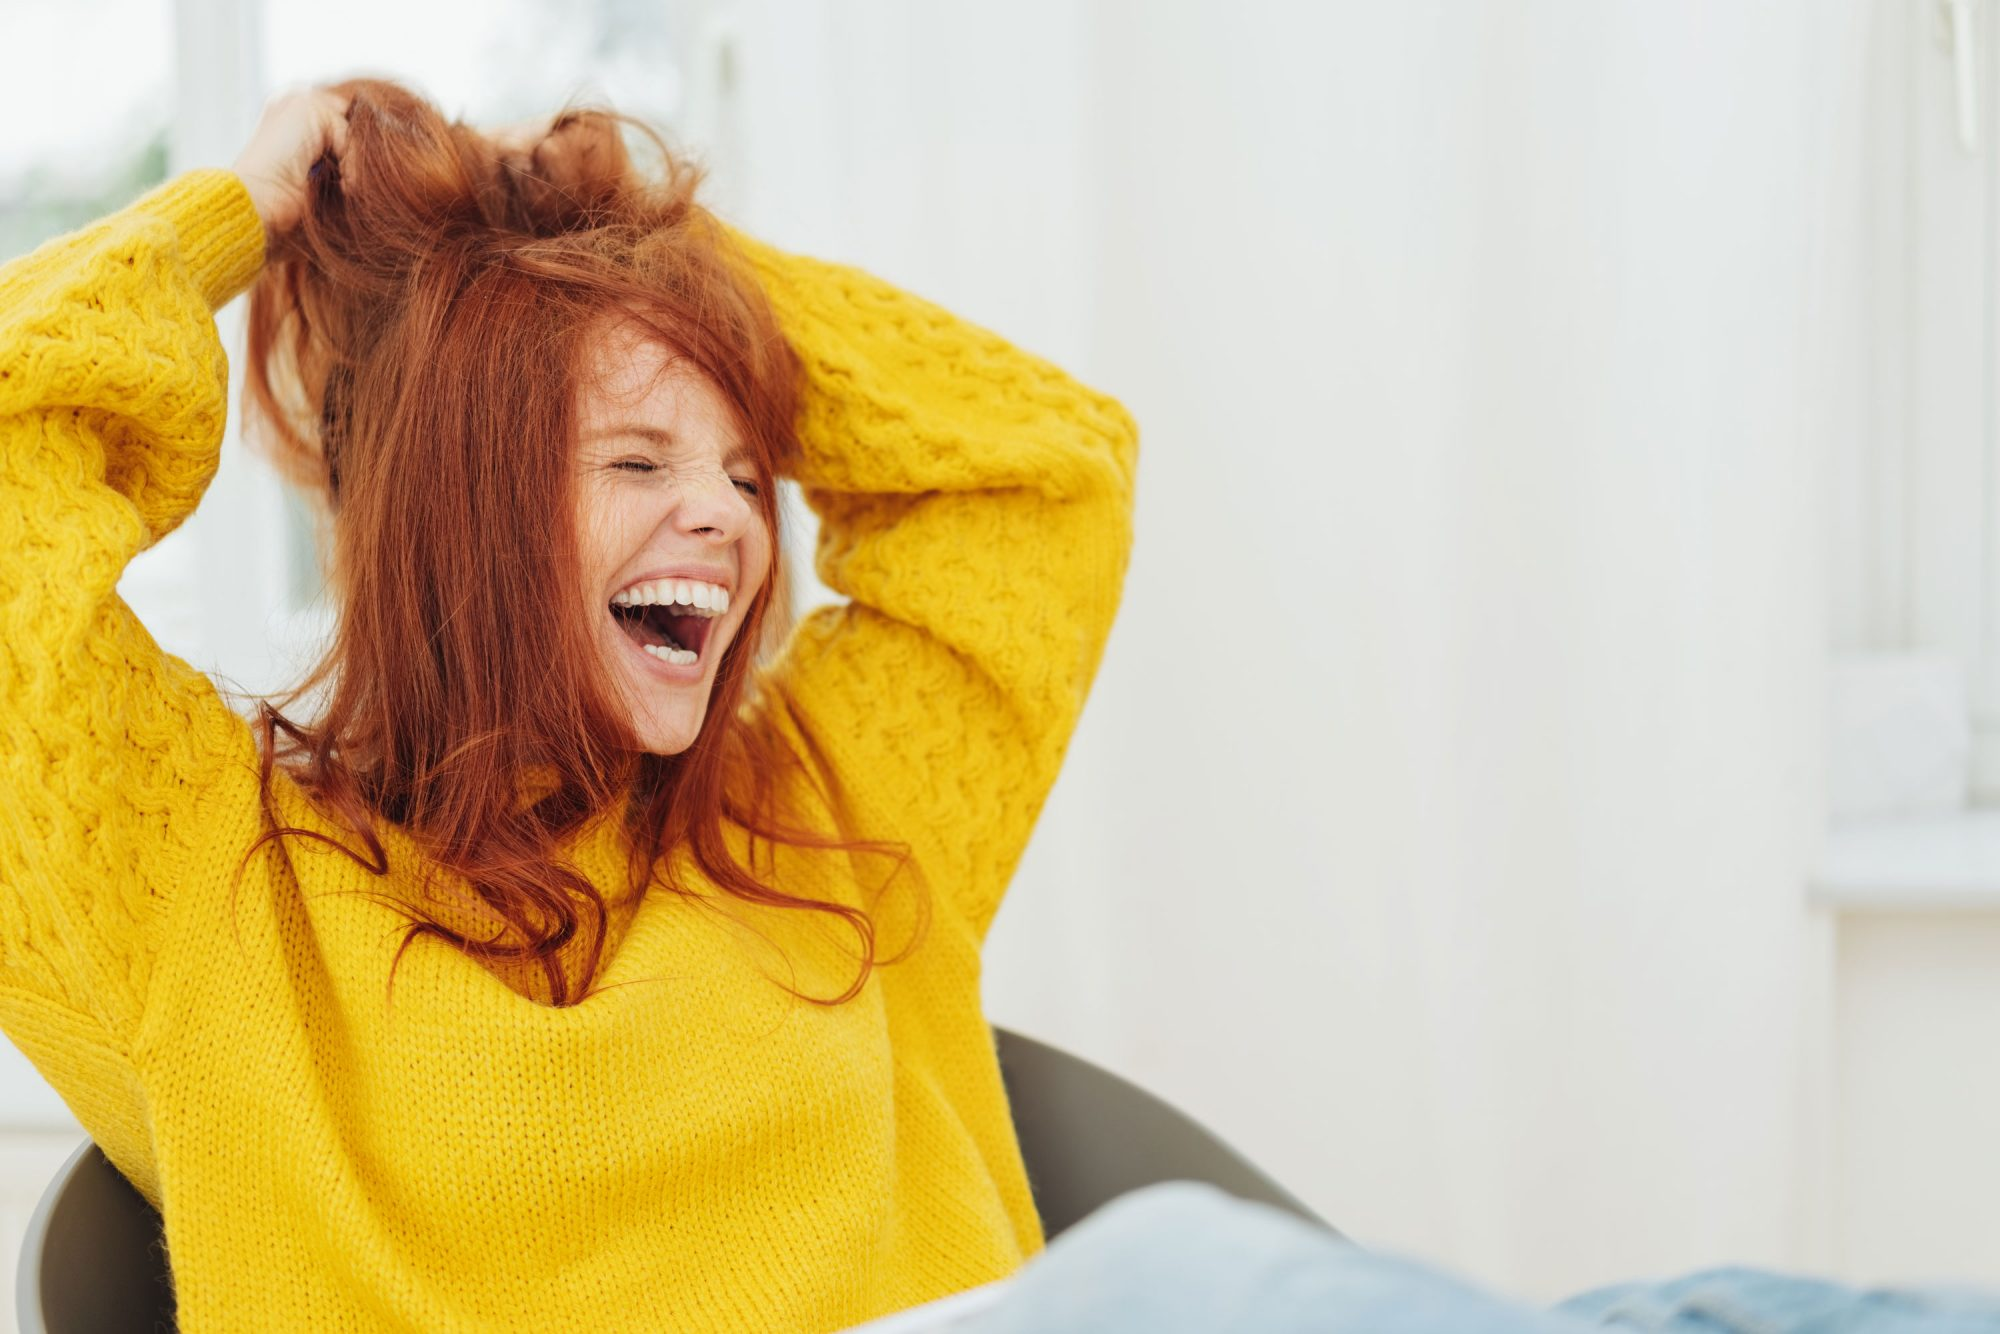 Woman with Red Hair Laughing